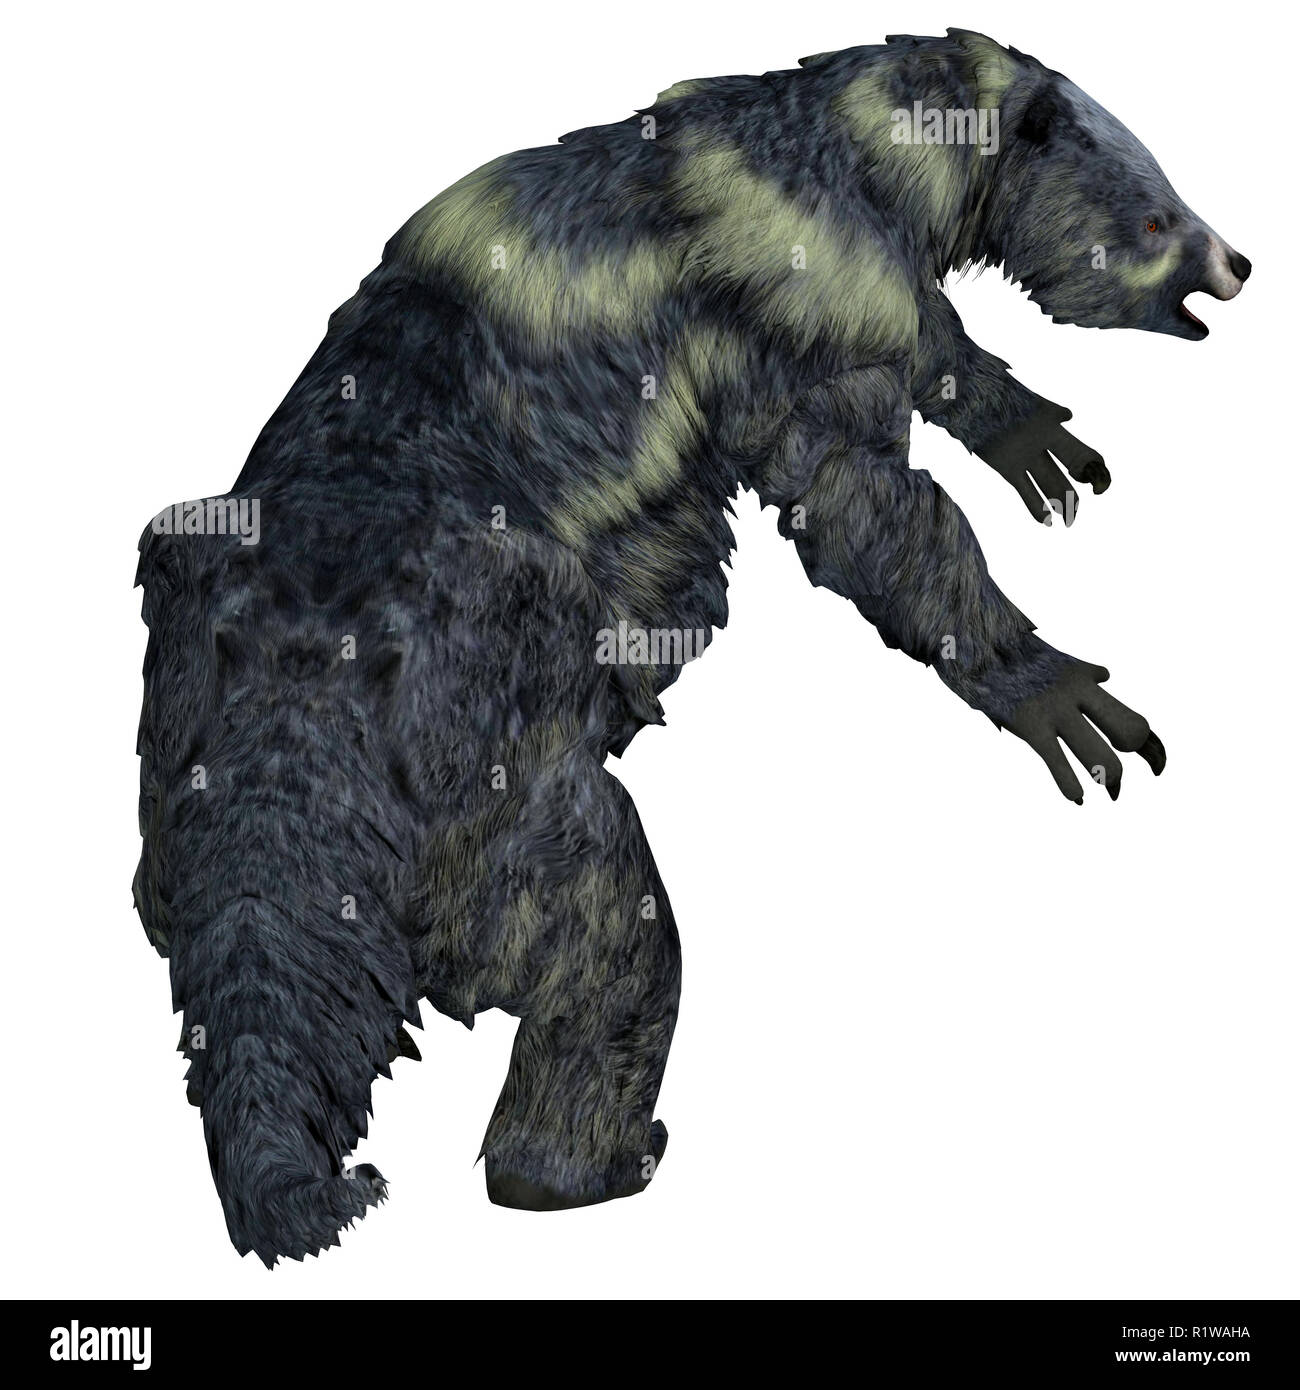 Eremotherium was a herbivorous Giant Ground Sloth that lived in North and South America during the Pleistocene Period. - Stock Image